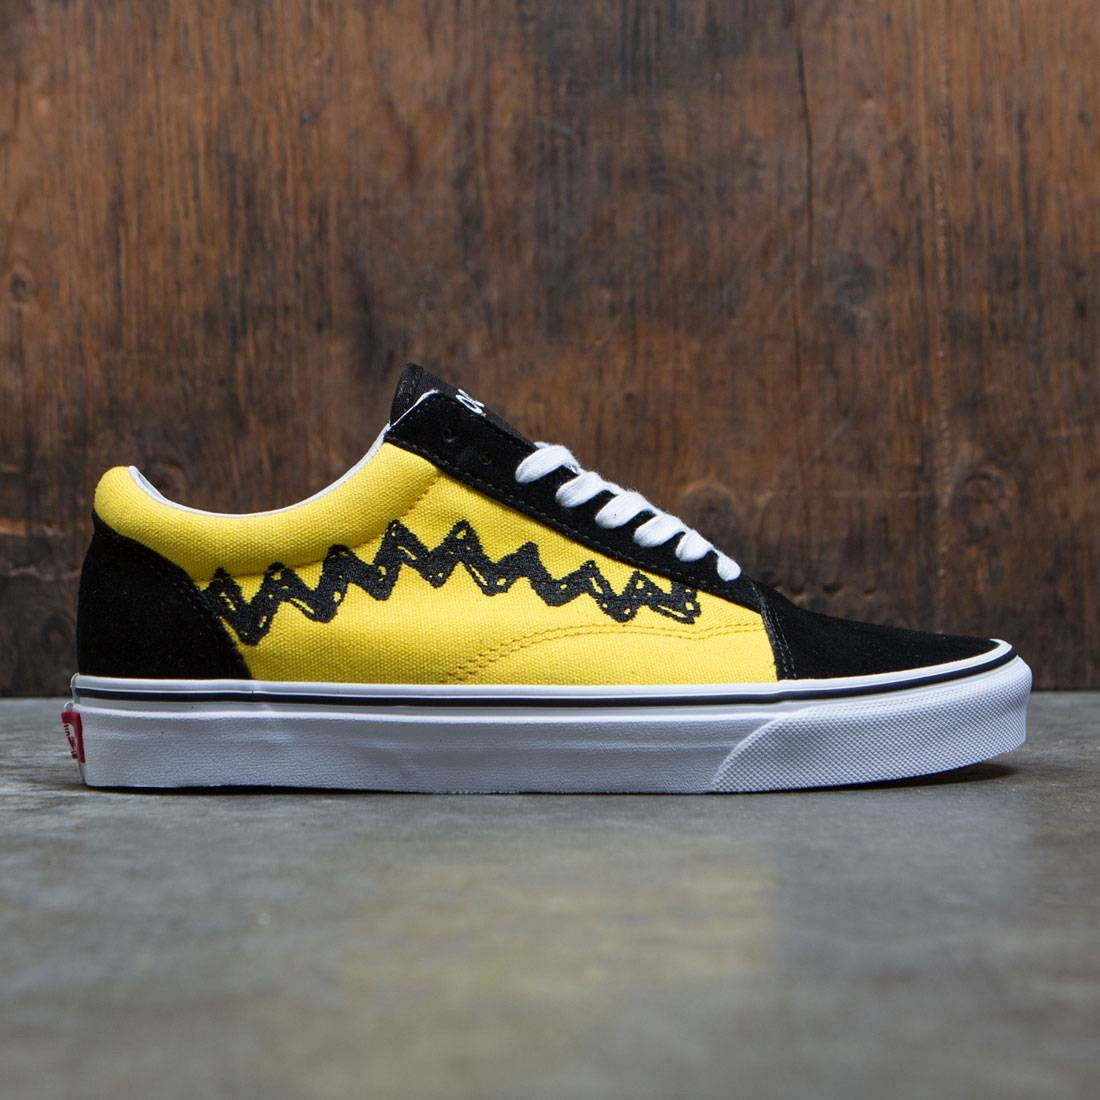 vans snoopy yellow